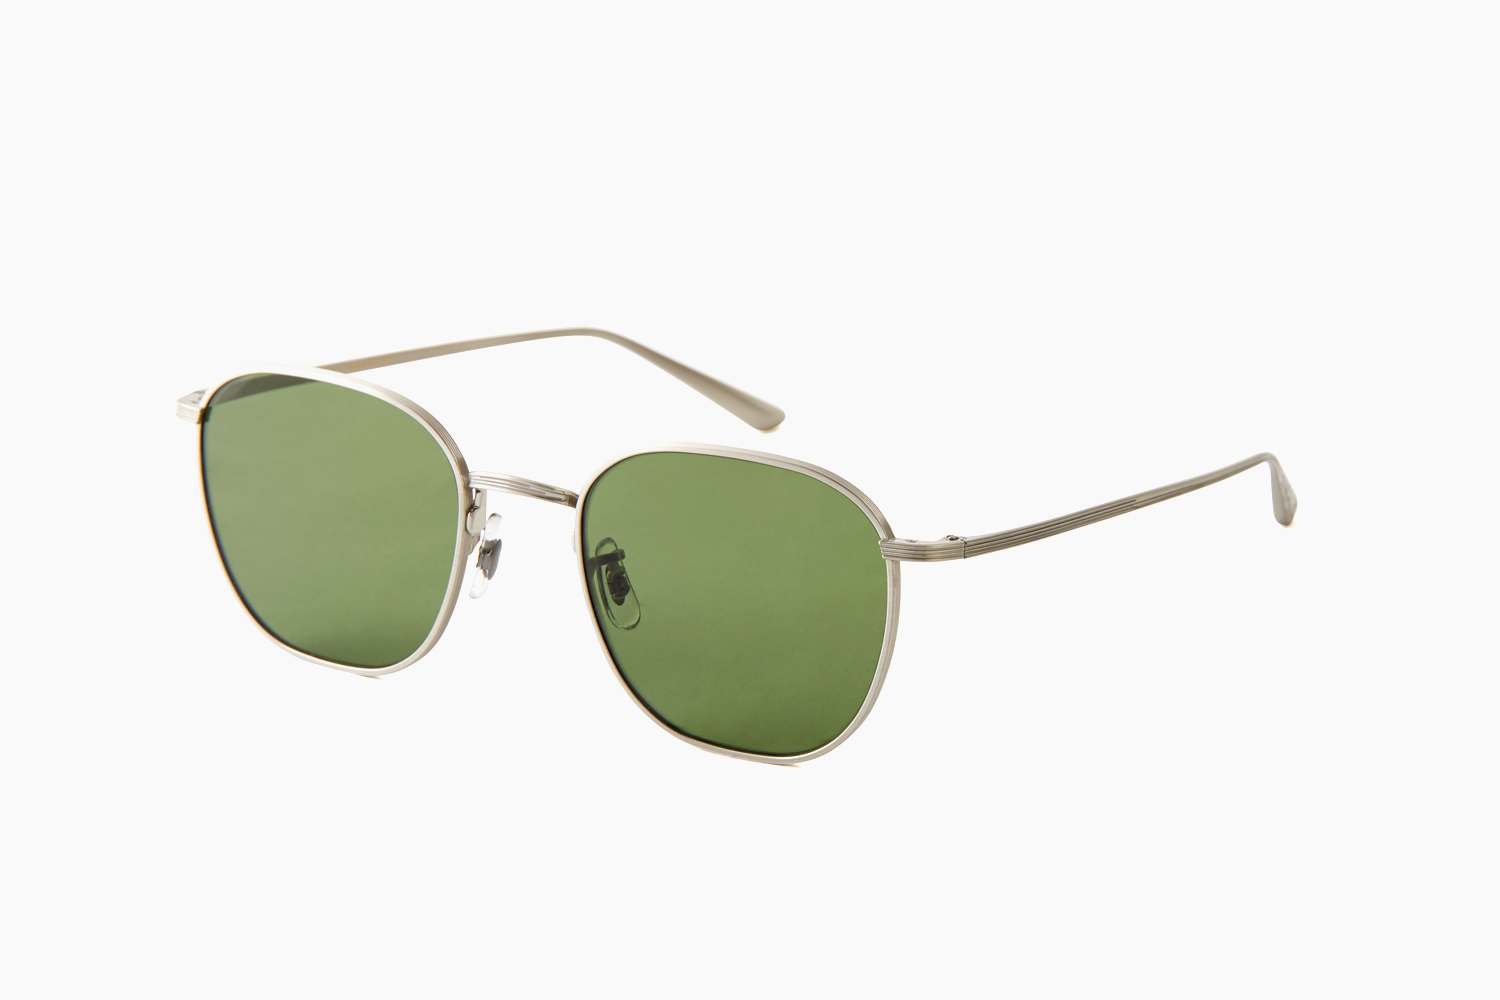 OLIVER PEOPLES THE ROW|Board Meeting 2 - Antique Silver|OLIVER PEOPLES